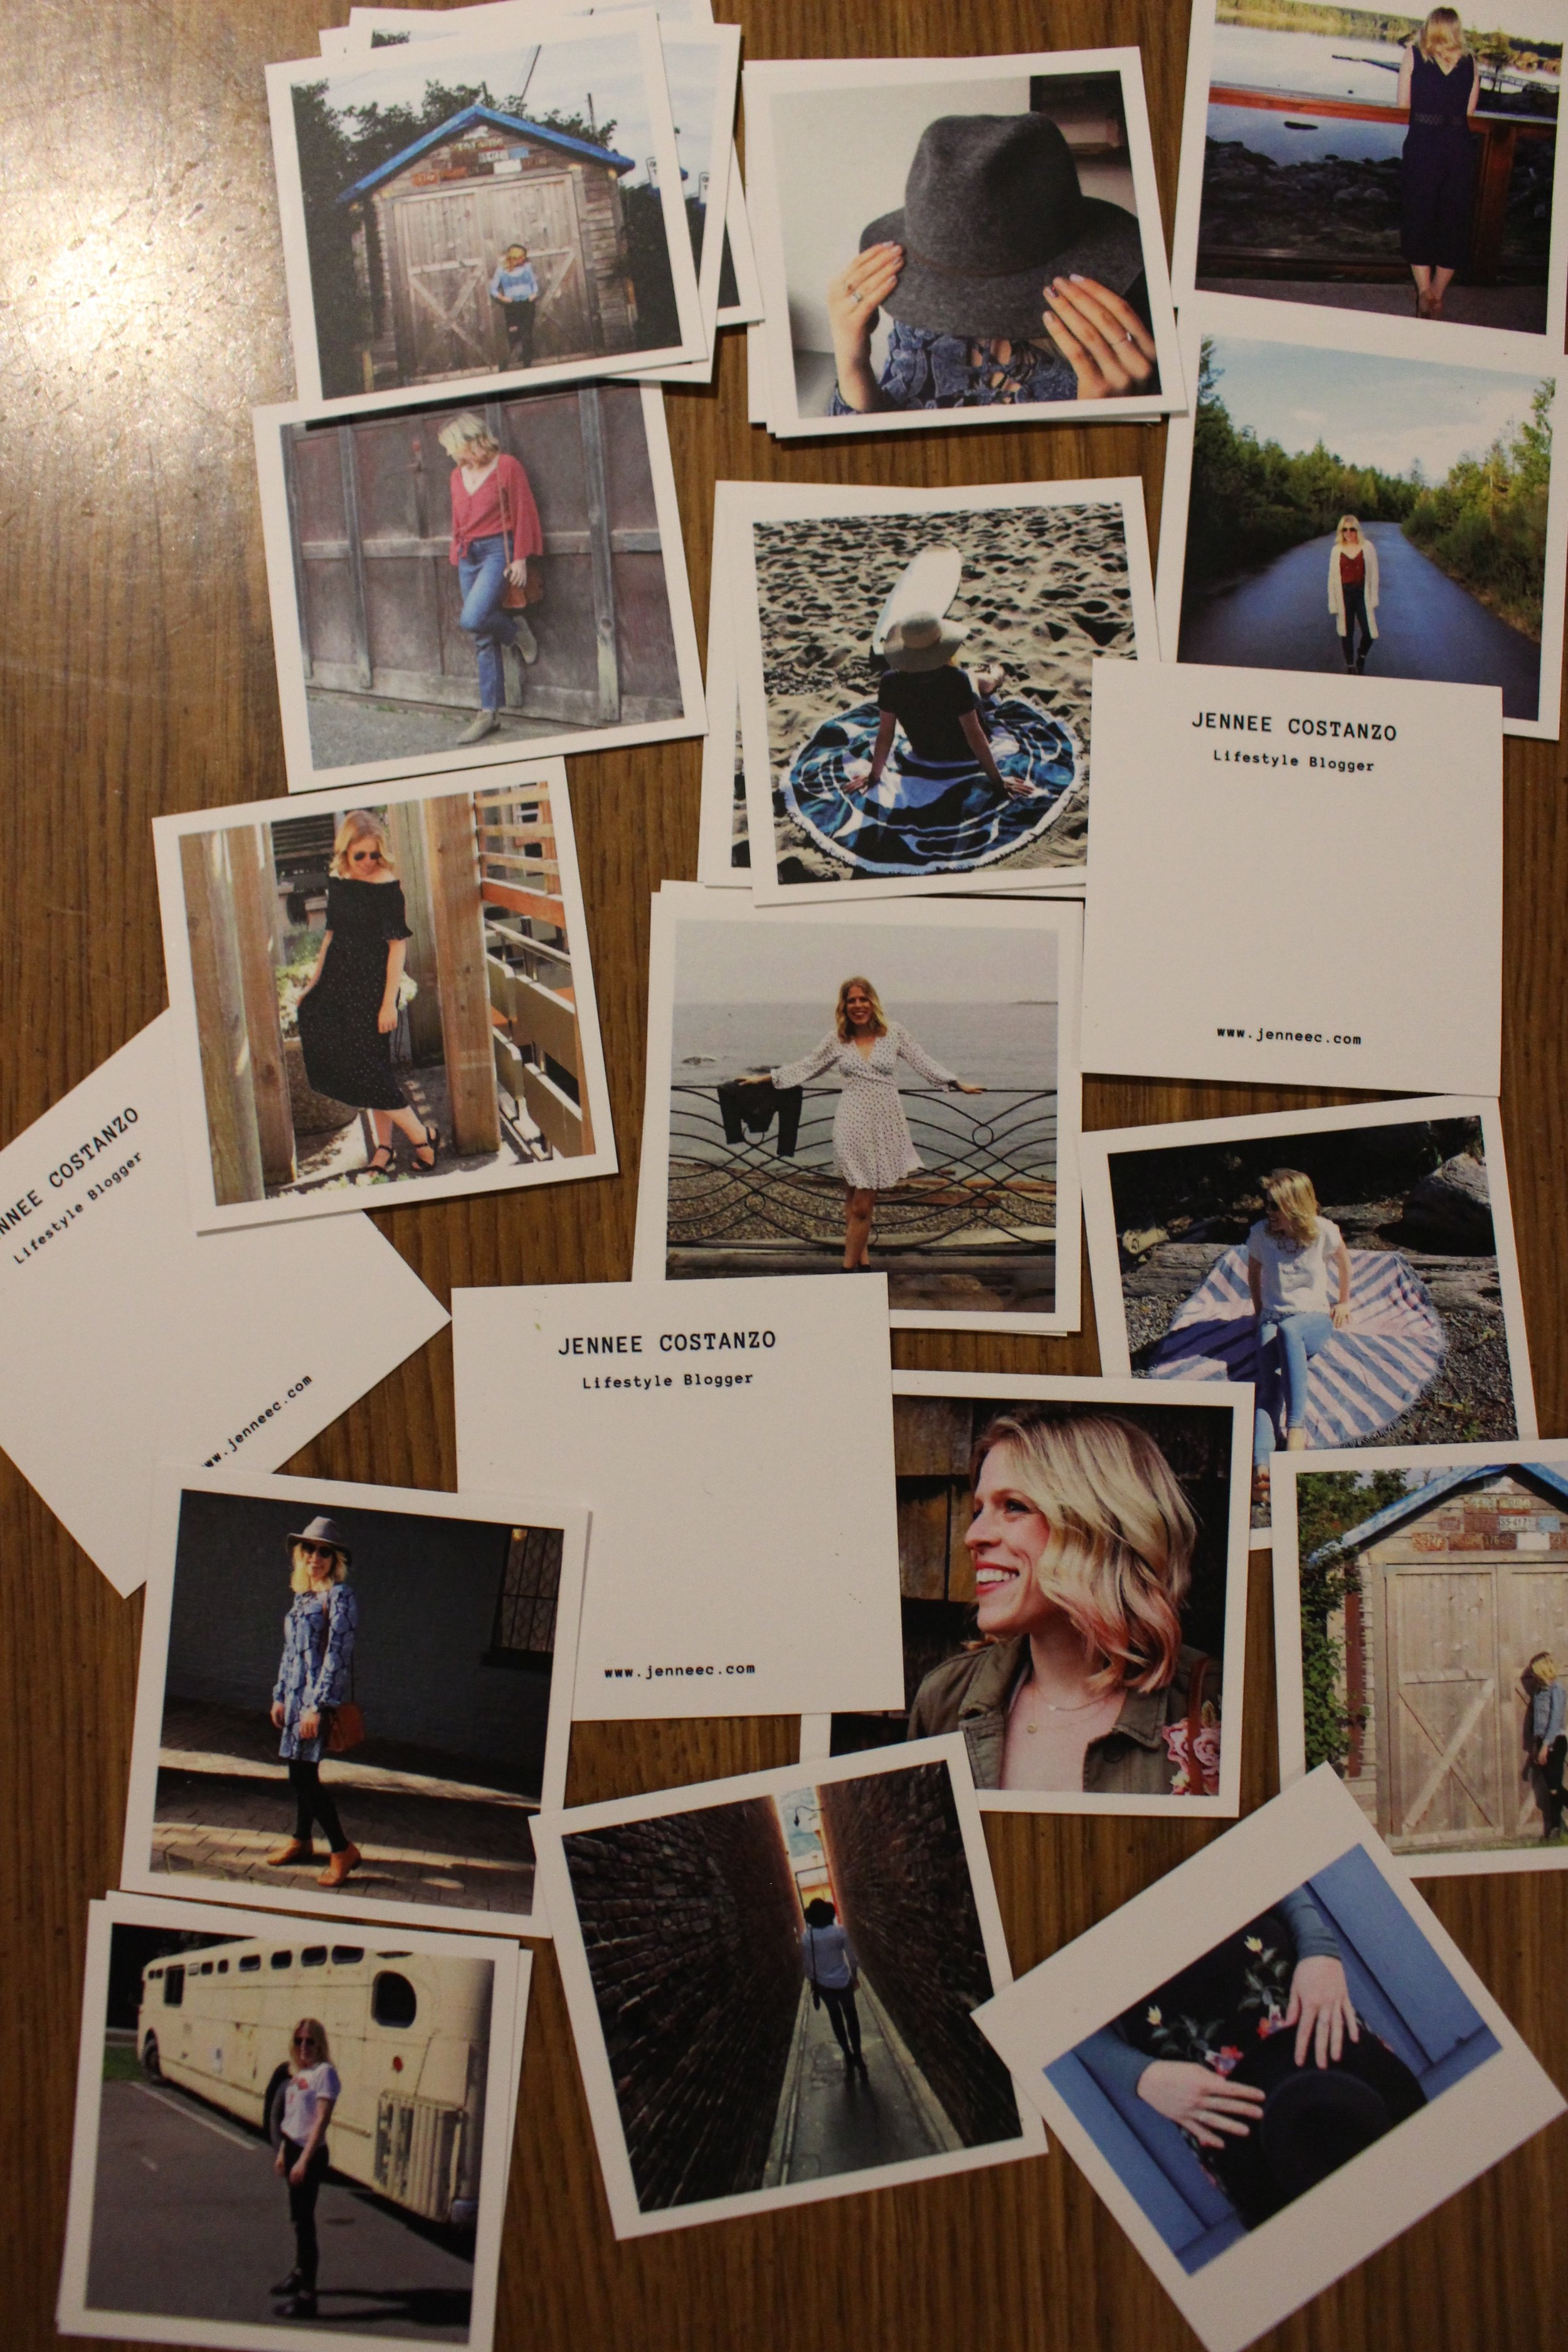 So amazing seeing all my friends and Dave's photograph on these little cards